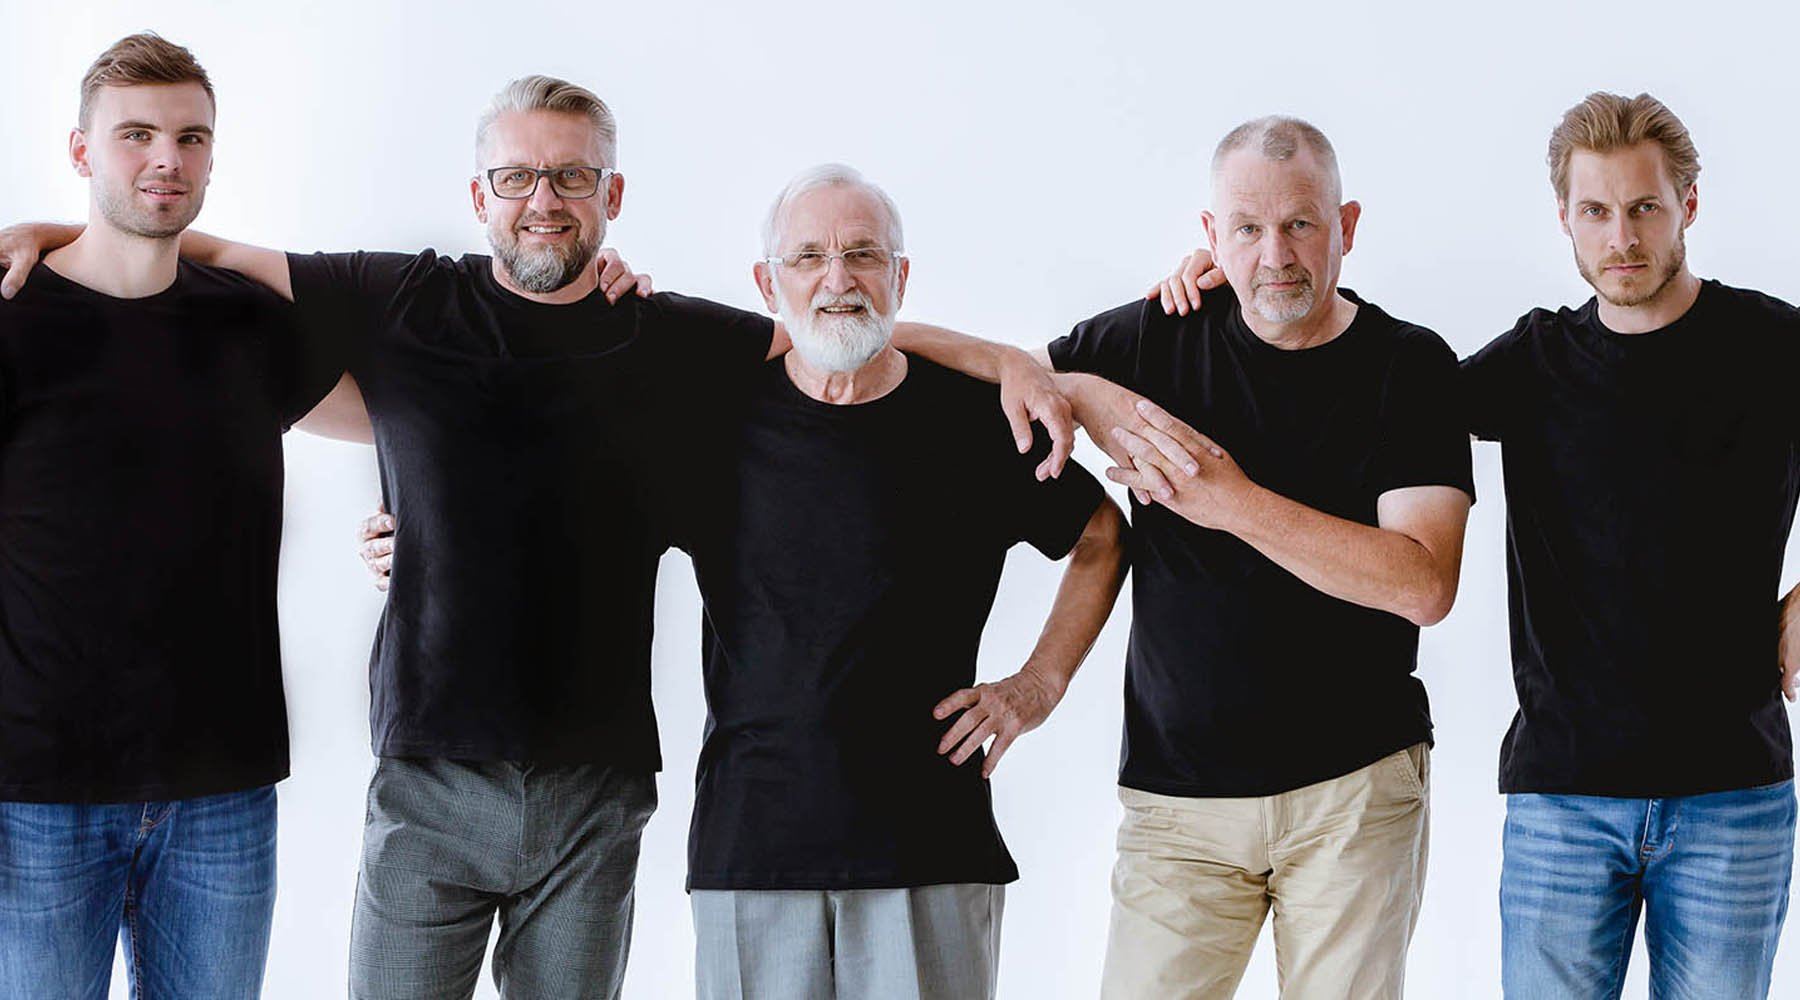 Group of men all ages